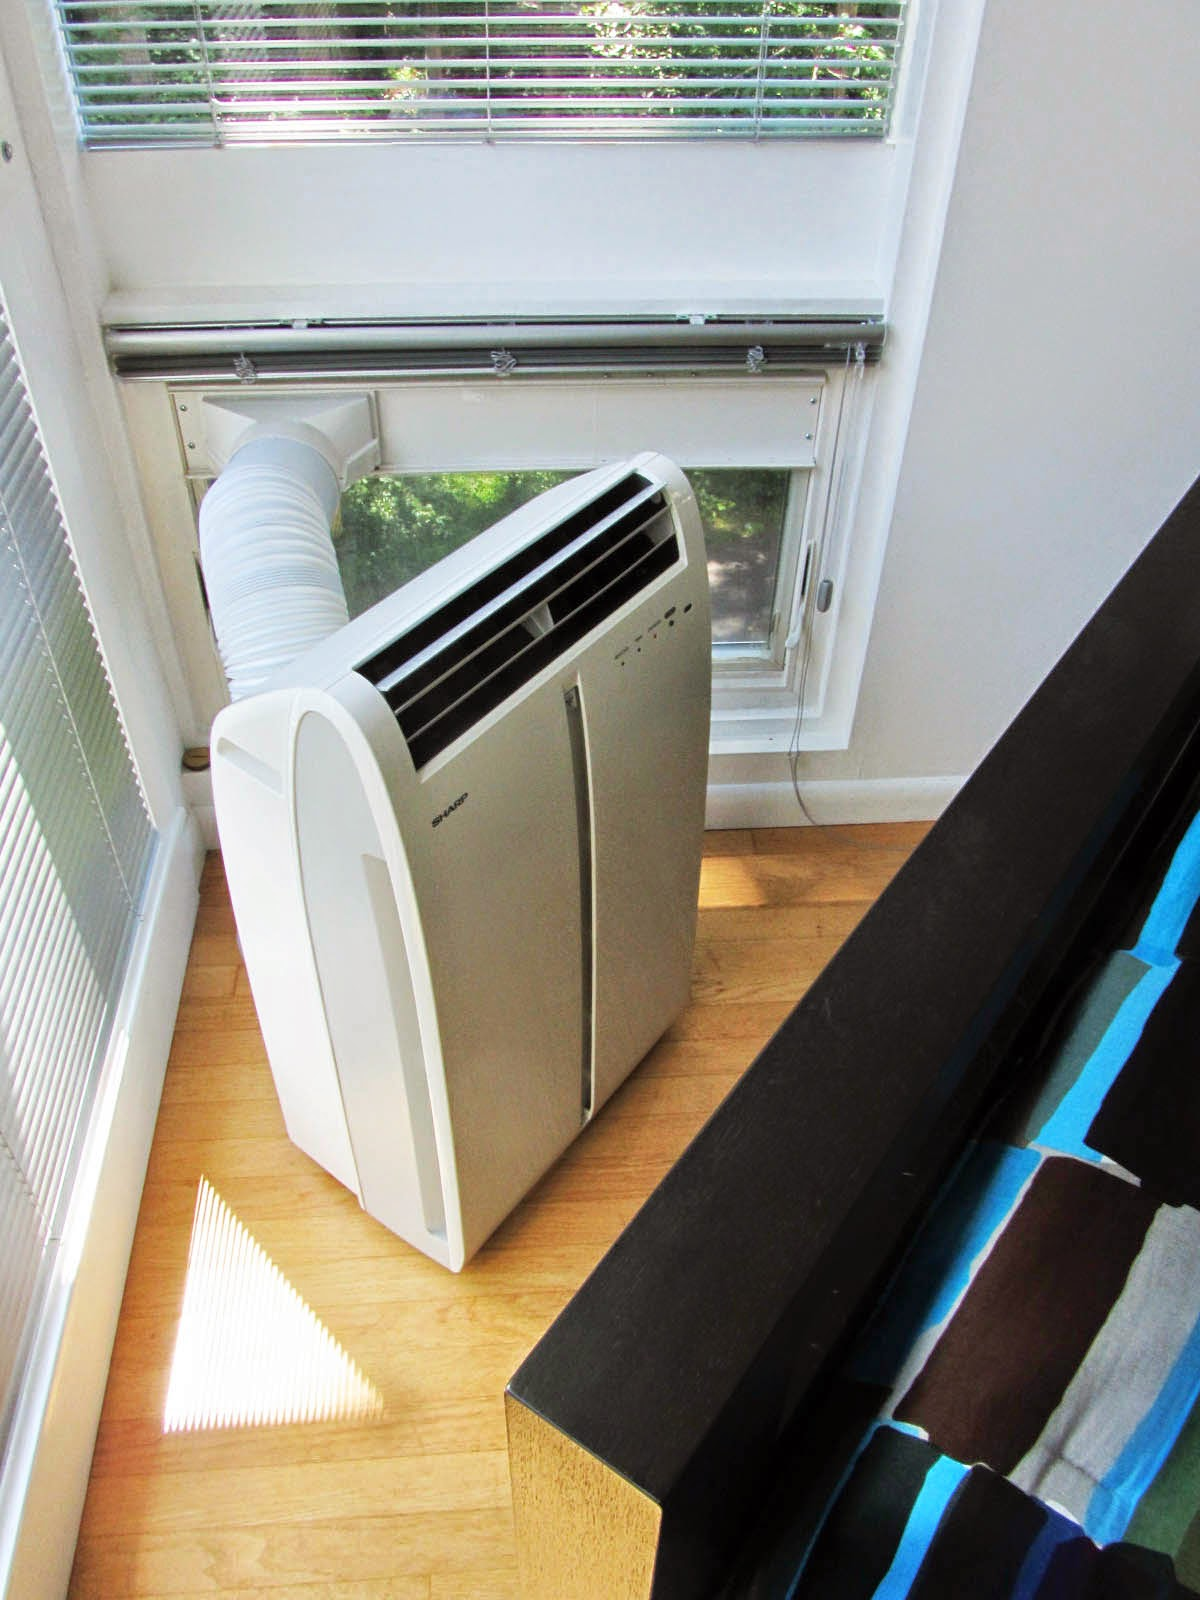 Whole house ac units - In Addition Even Brand New Whole House Single Fan Coil Unit Systems Just Don T Cool Or Heat Multi Floor Multi Zone Residences Well